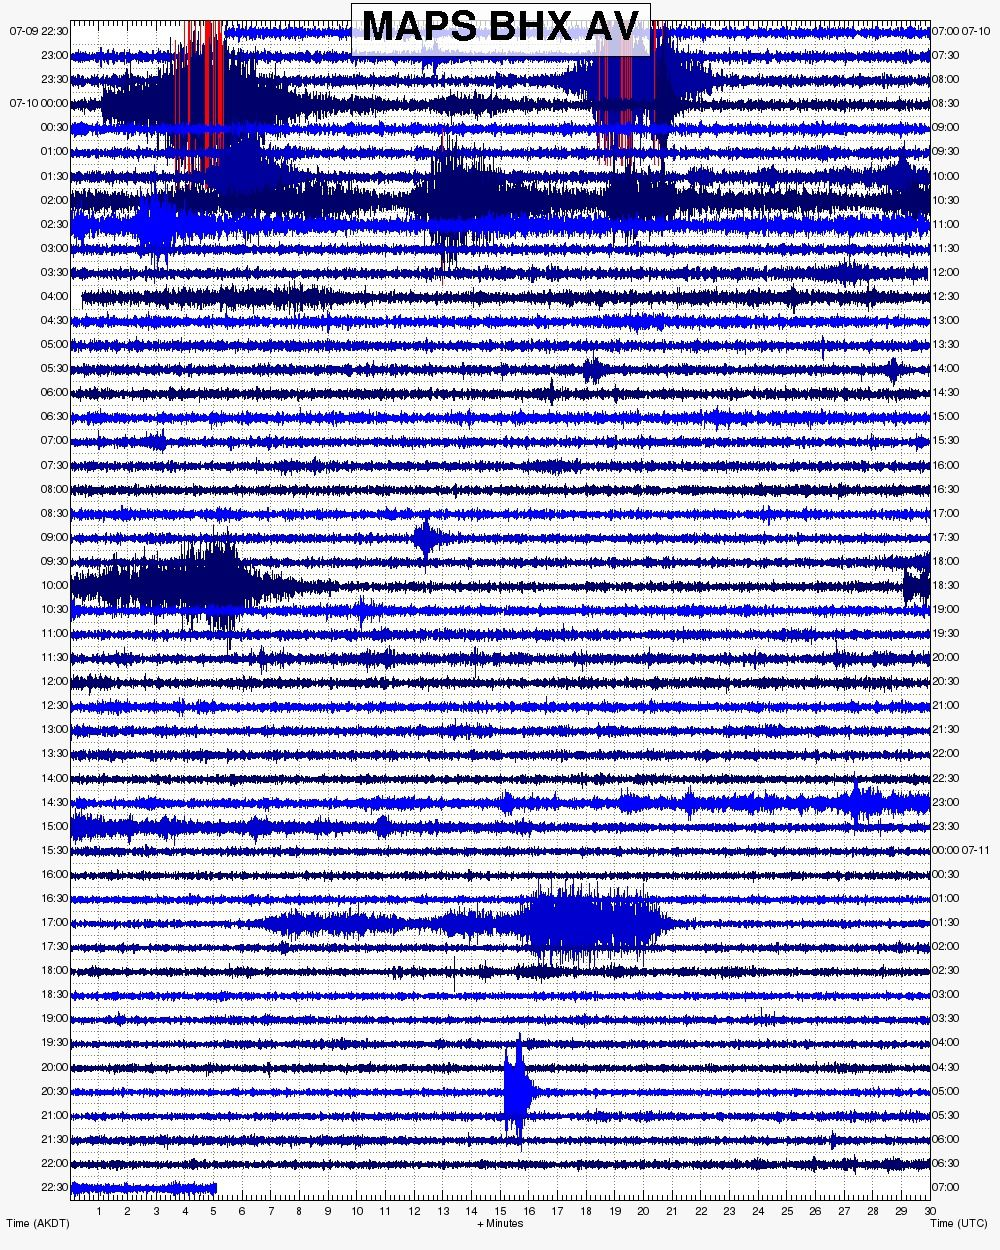 Bogoslof - seismogram showing the episodes of activity of 10 and 11 July 2017 - Doc. AVO